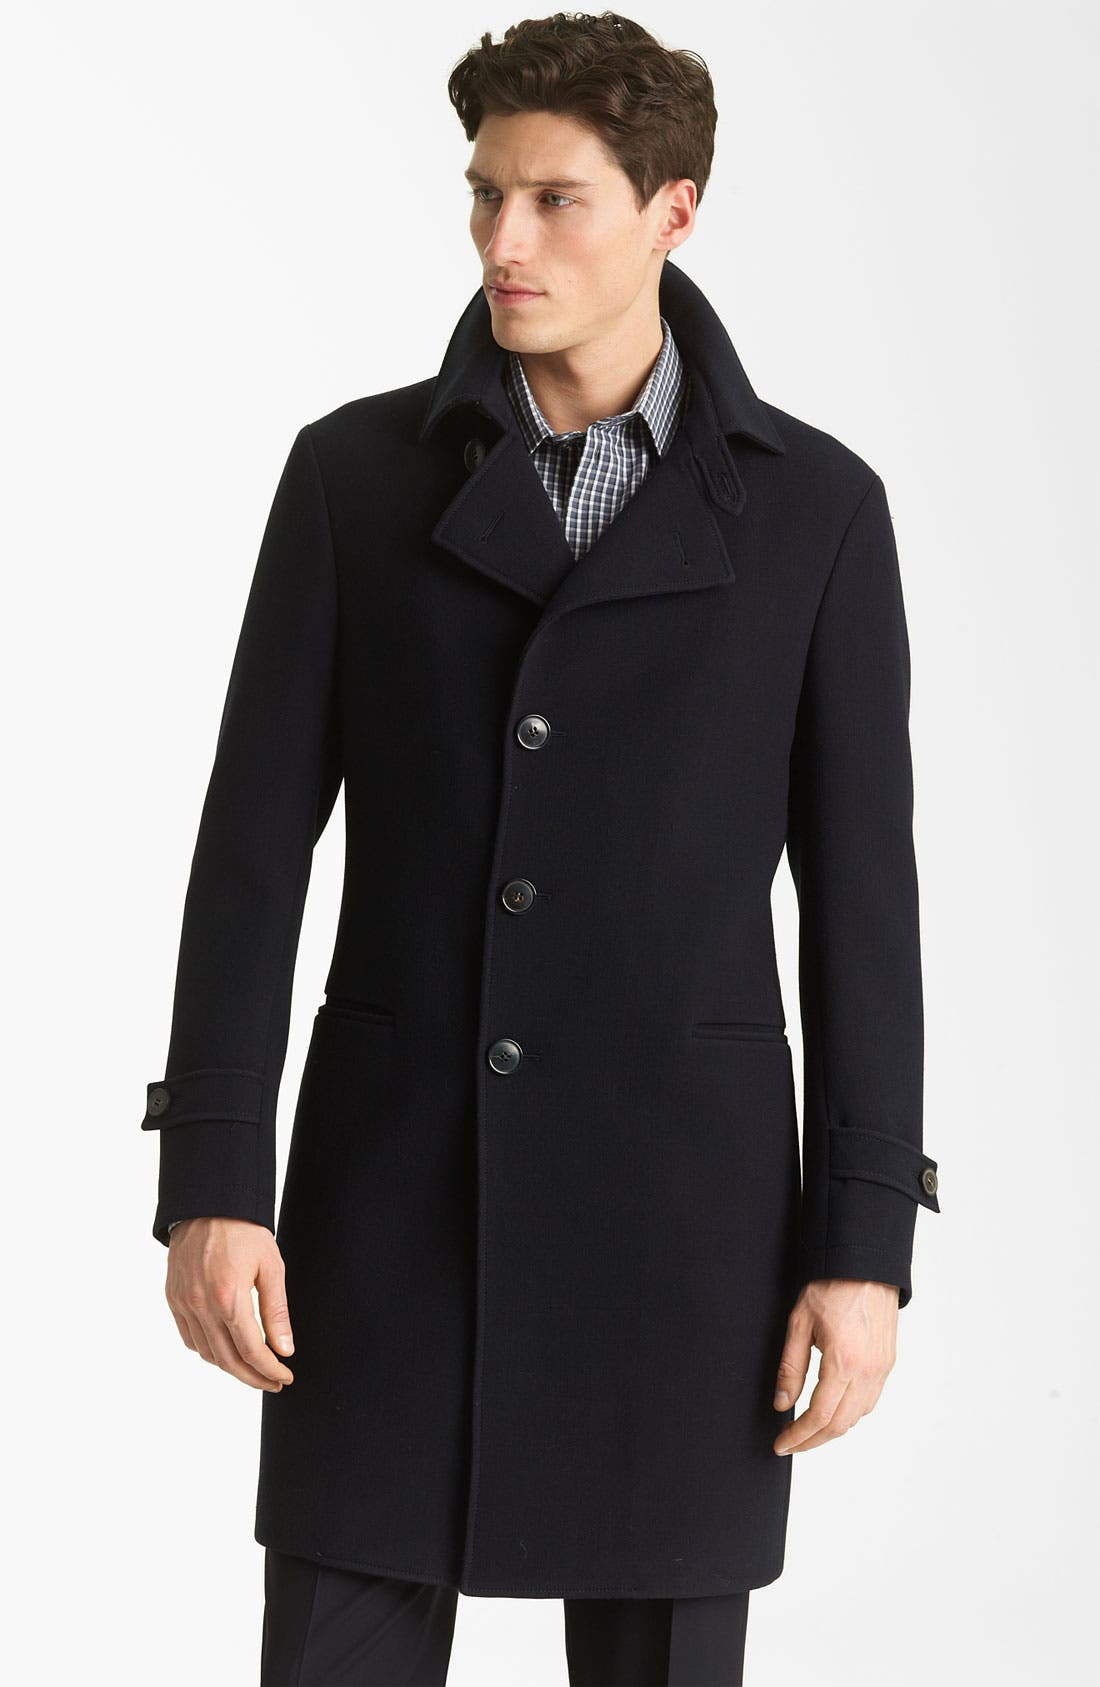 Alternate Image 1 Selected - Armani Collezioni Twill Top Coat